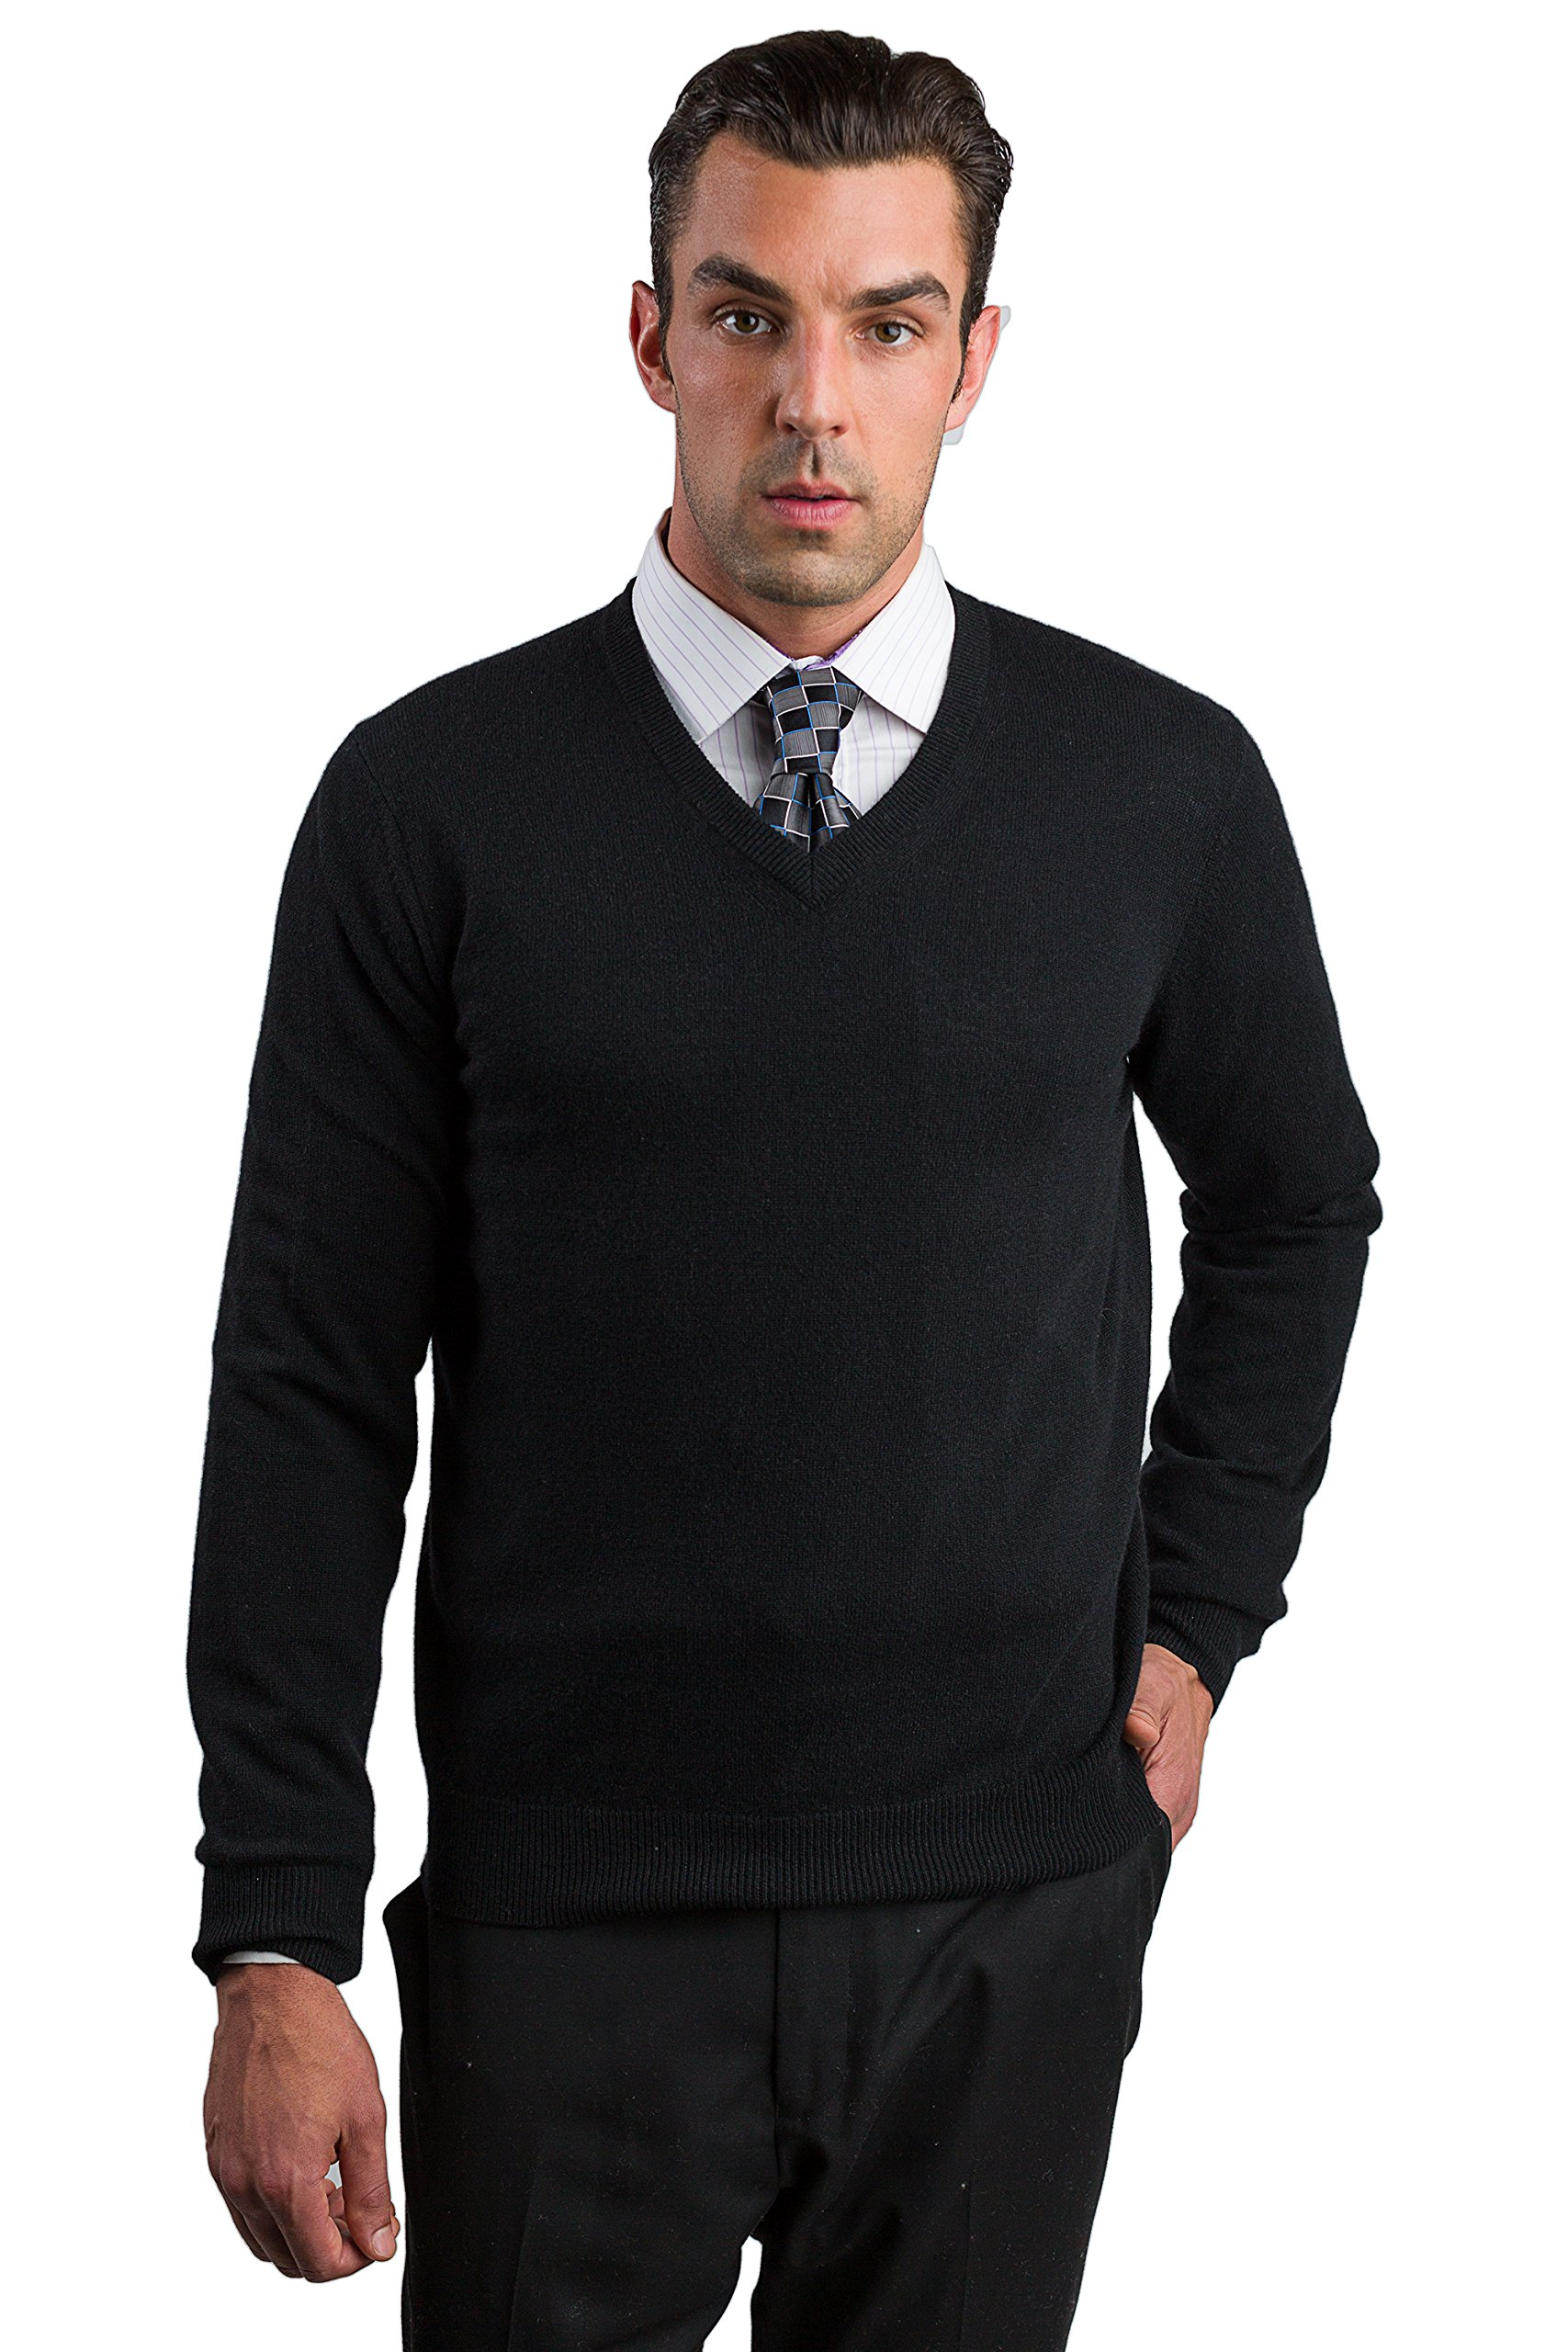 JENNIE LIU Men's 100% Cashmere Long Sleeve V Neck Sweater (Medium, Black) by JENNIE LIU